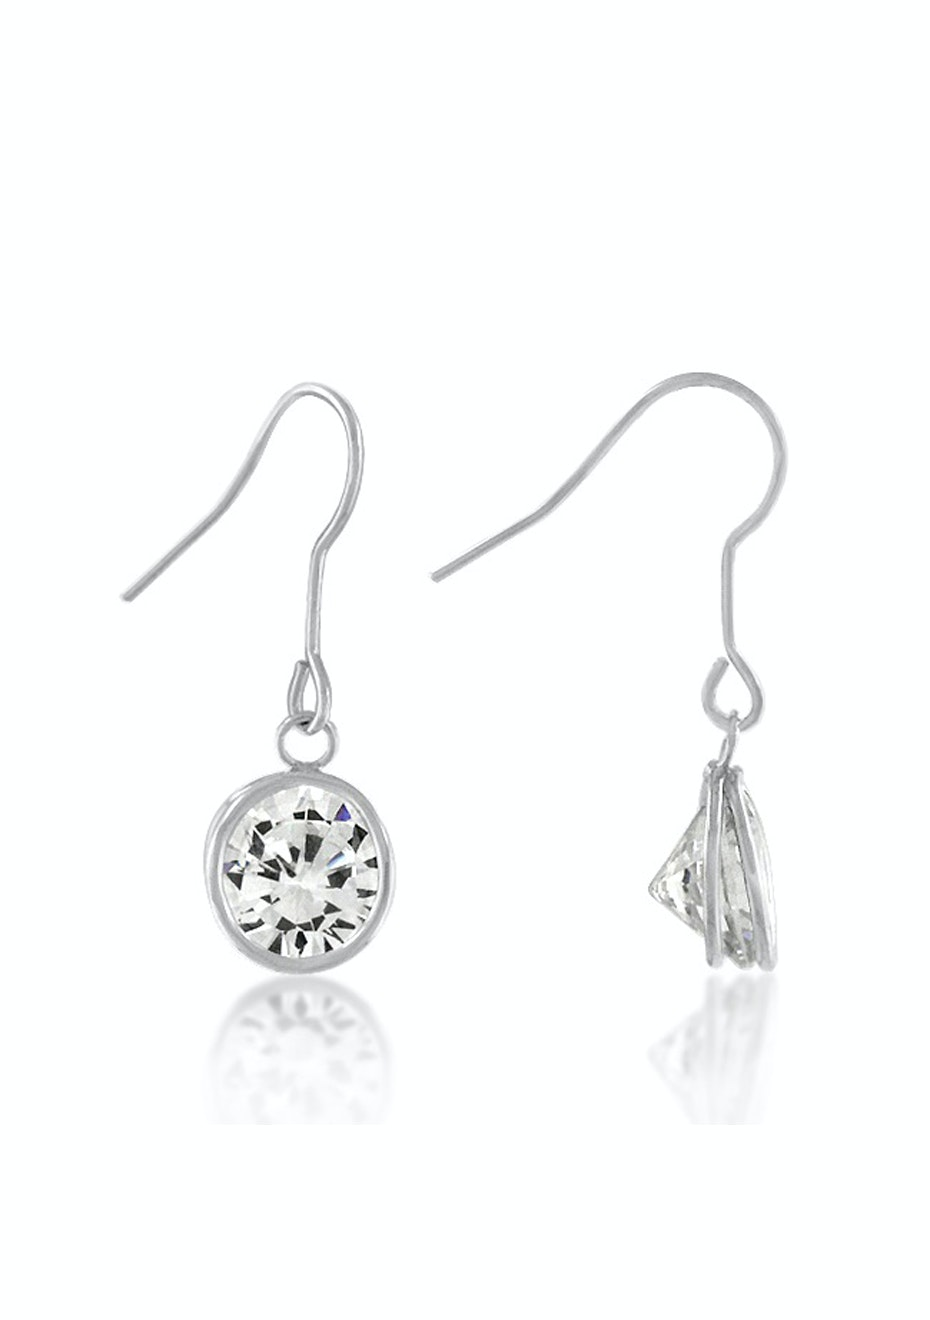 Classic Drop Earrings in White Gold